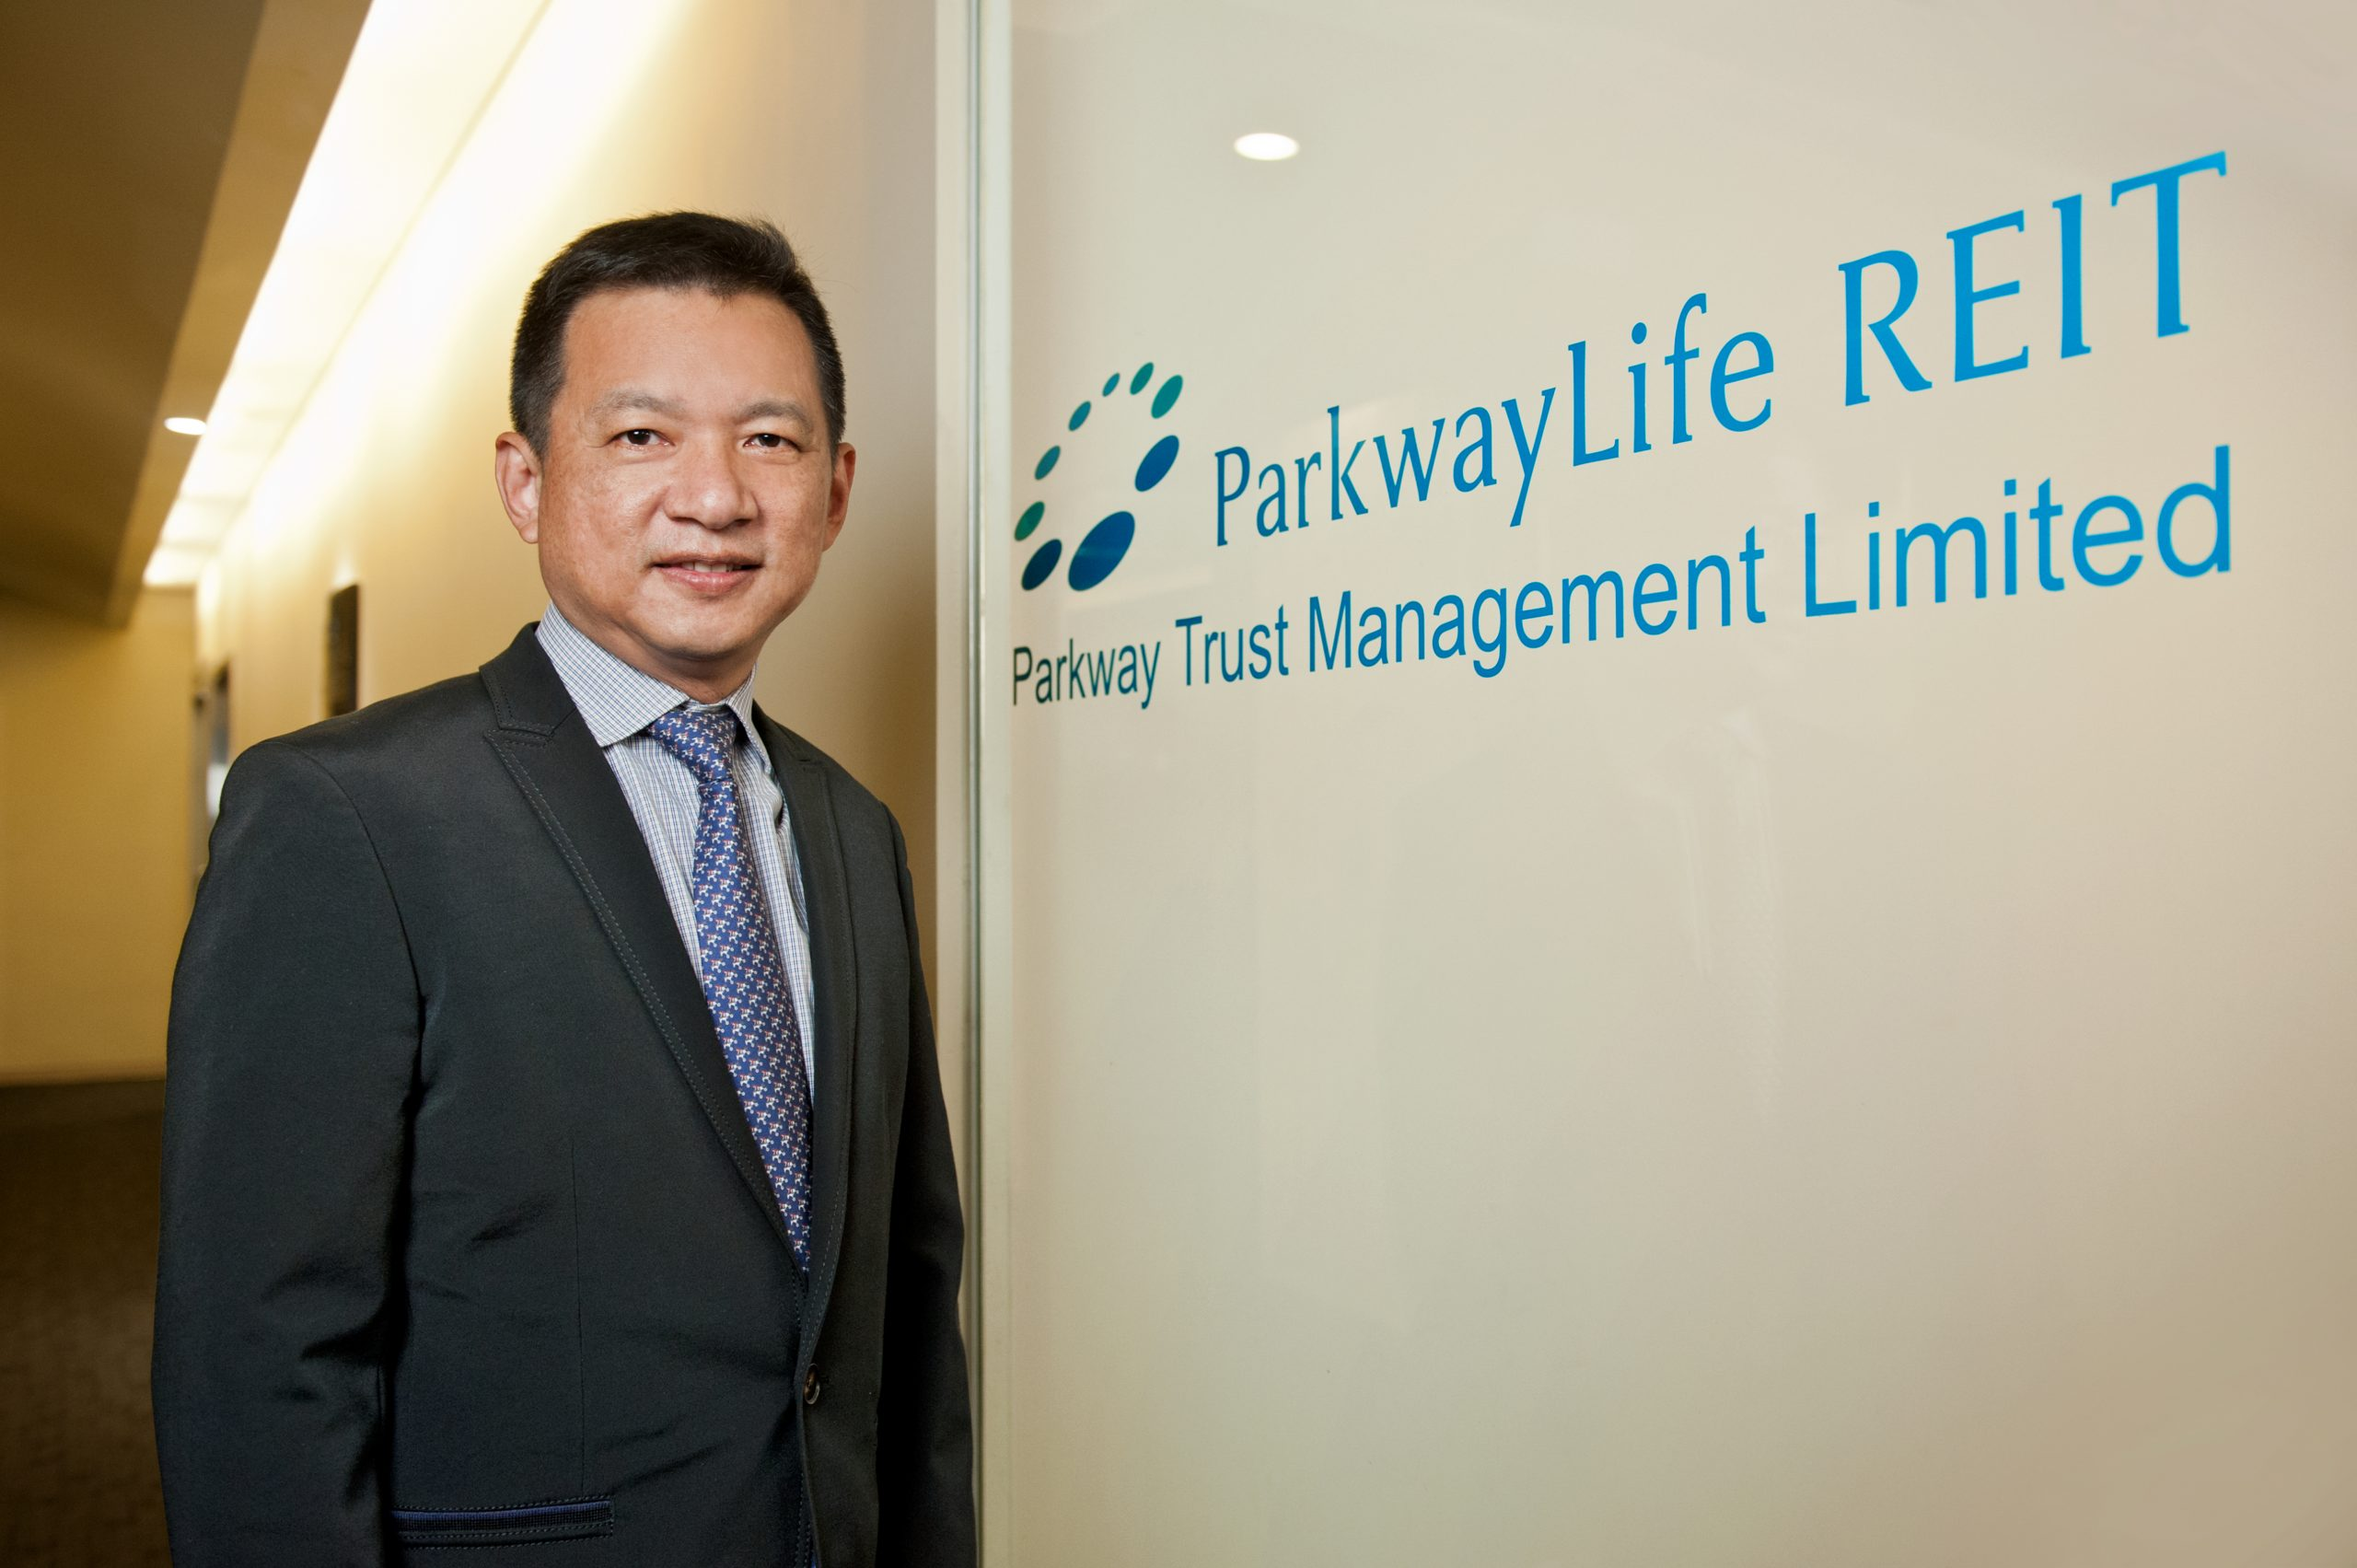 Yong Yean Chau, CEO of Parkway Life REIT's manager. (Parkway Life REIT)